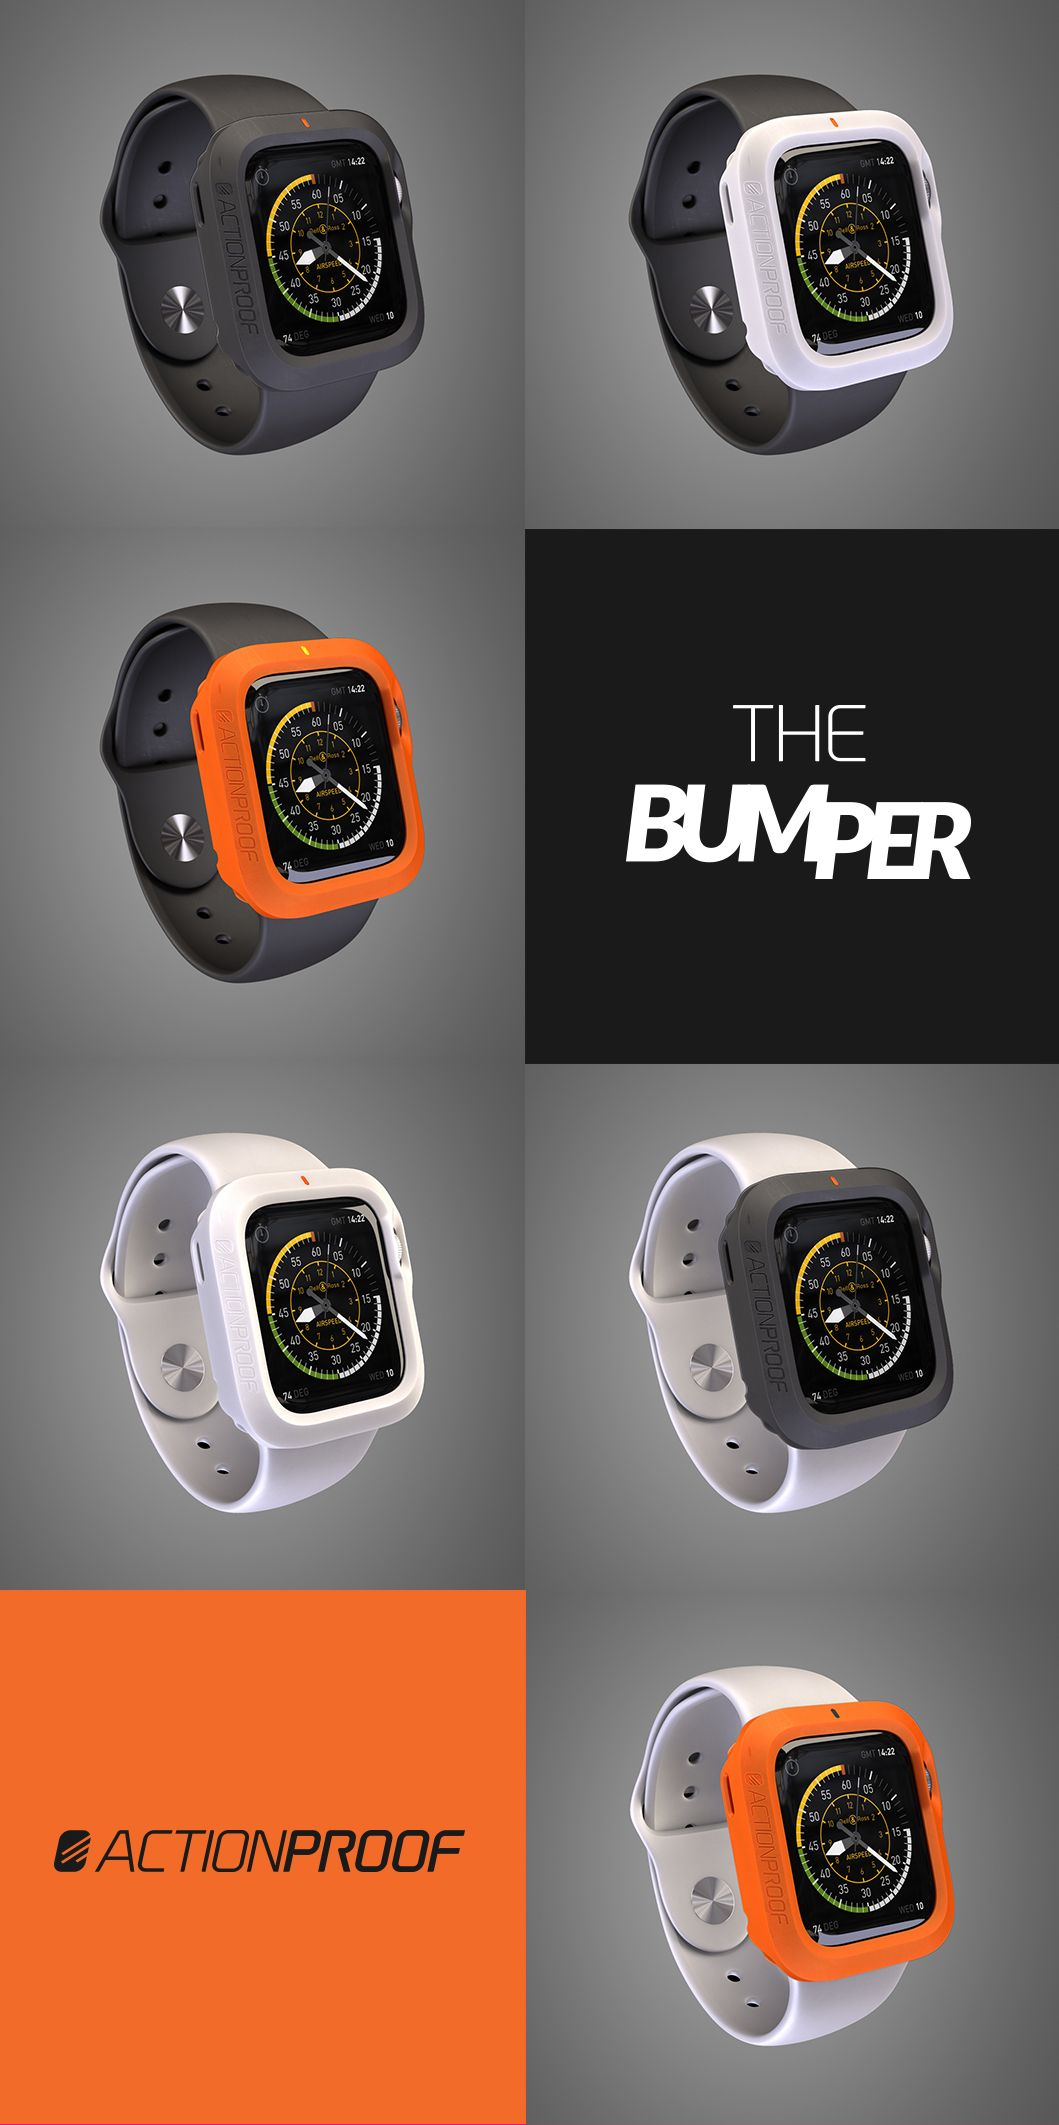 THE BUMPER BY ACTIONPROOF: Protect The Apple Watch